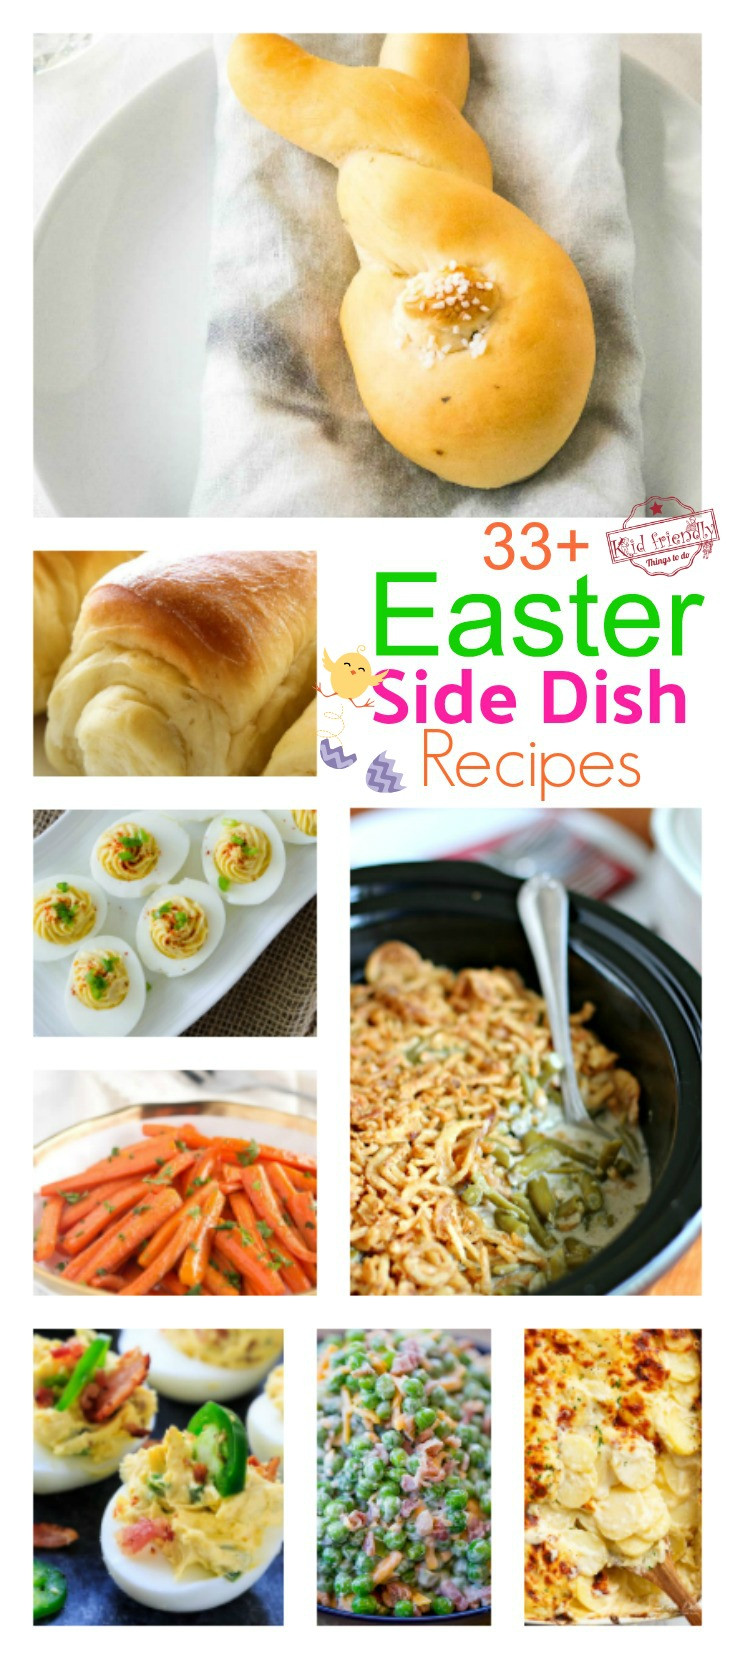 Easy Easter Side Dishes Recipe  Over 33 Easter Side Dish Recipes for Your Celebration Dinner